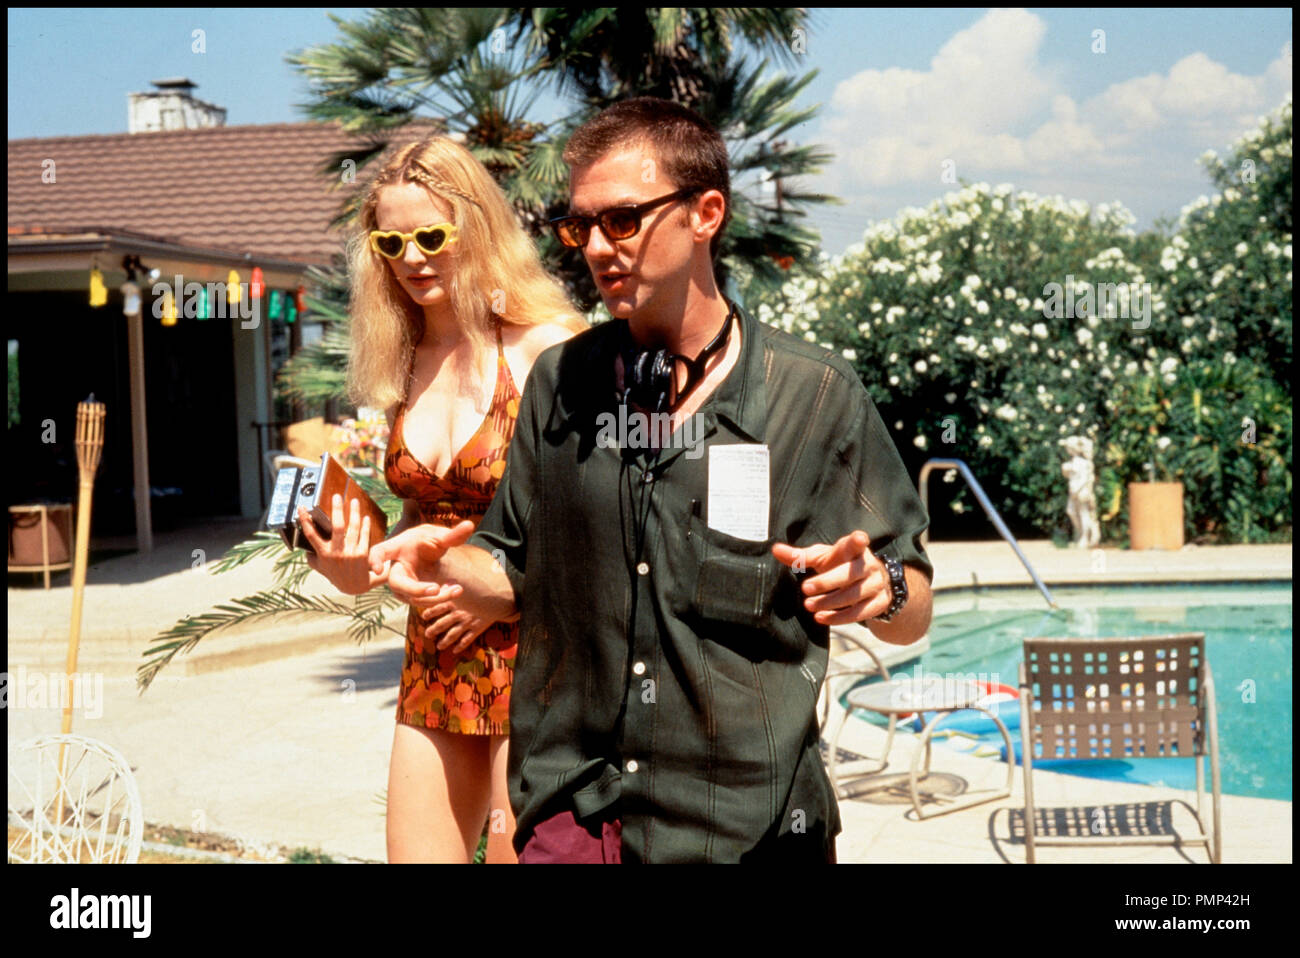 Prod DB © New Line Cinema / DR BOOGIE NIGHTS (BOOGIE NIGHTS) de Paul Thomas Anderson 1997 USA avec Heather Graham et Paul Thomas Anderson sur le tournage Stock Photo